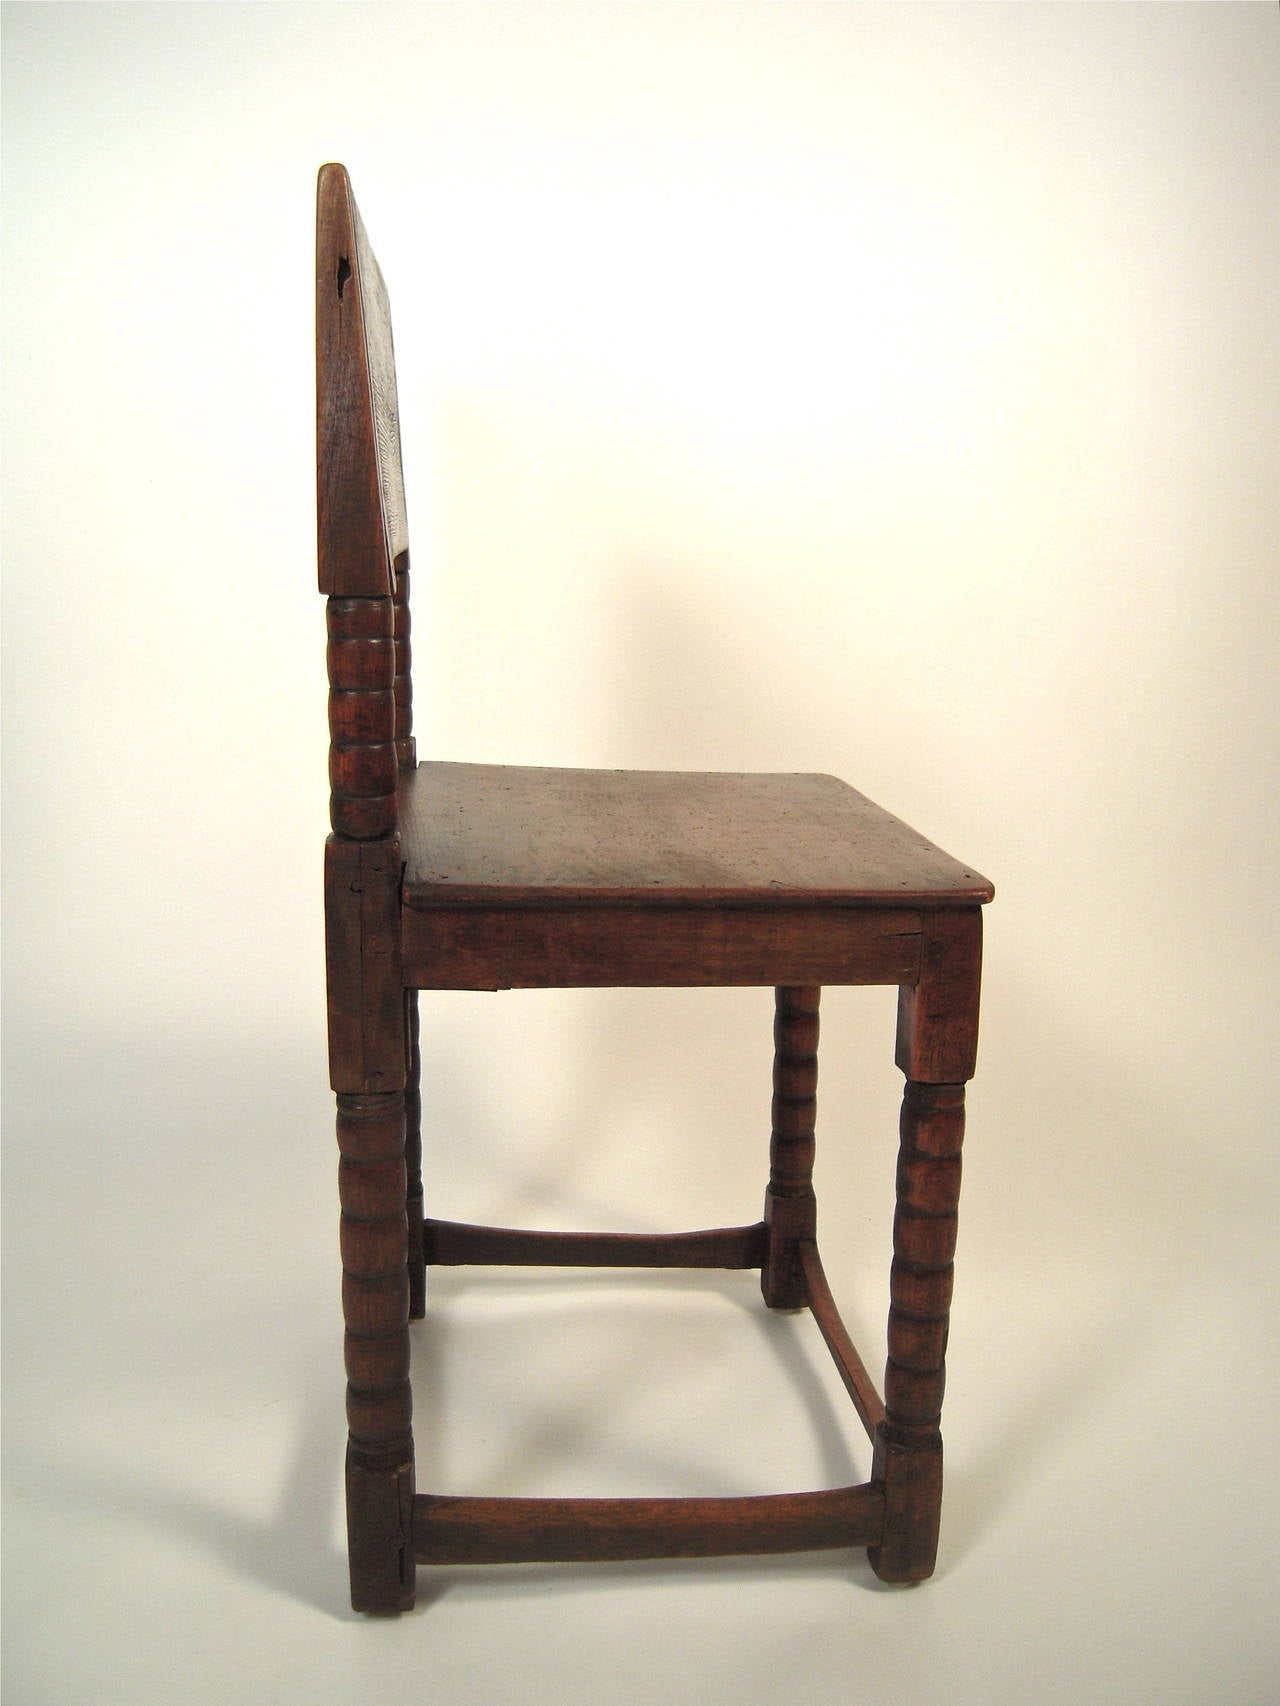 Chair table 17th century - 17th Century English Cromwellian Chair 2